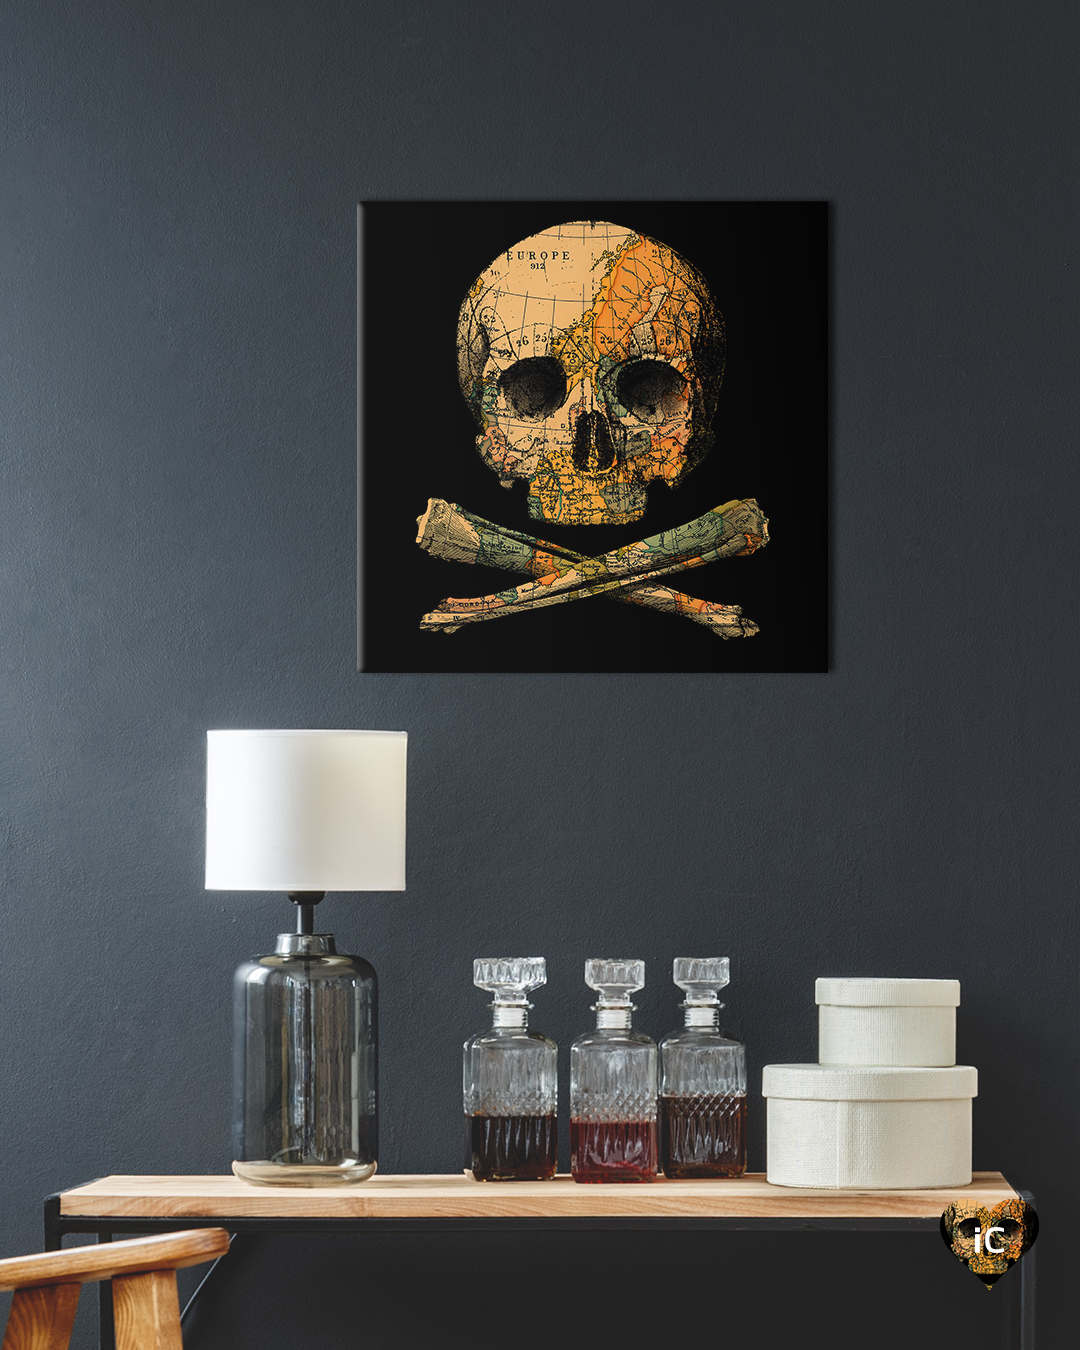 a black print with a skull and crossbones that have a treasure map design